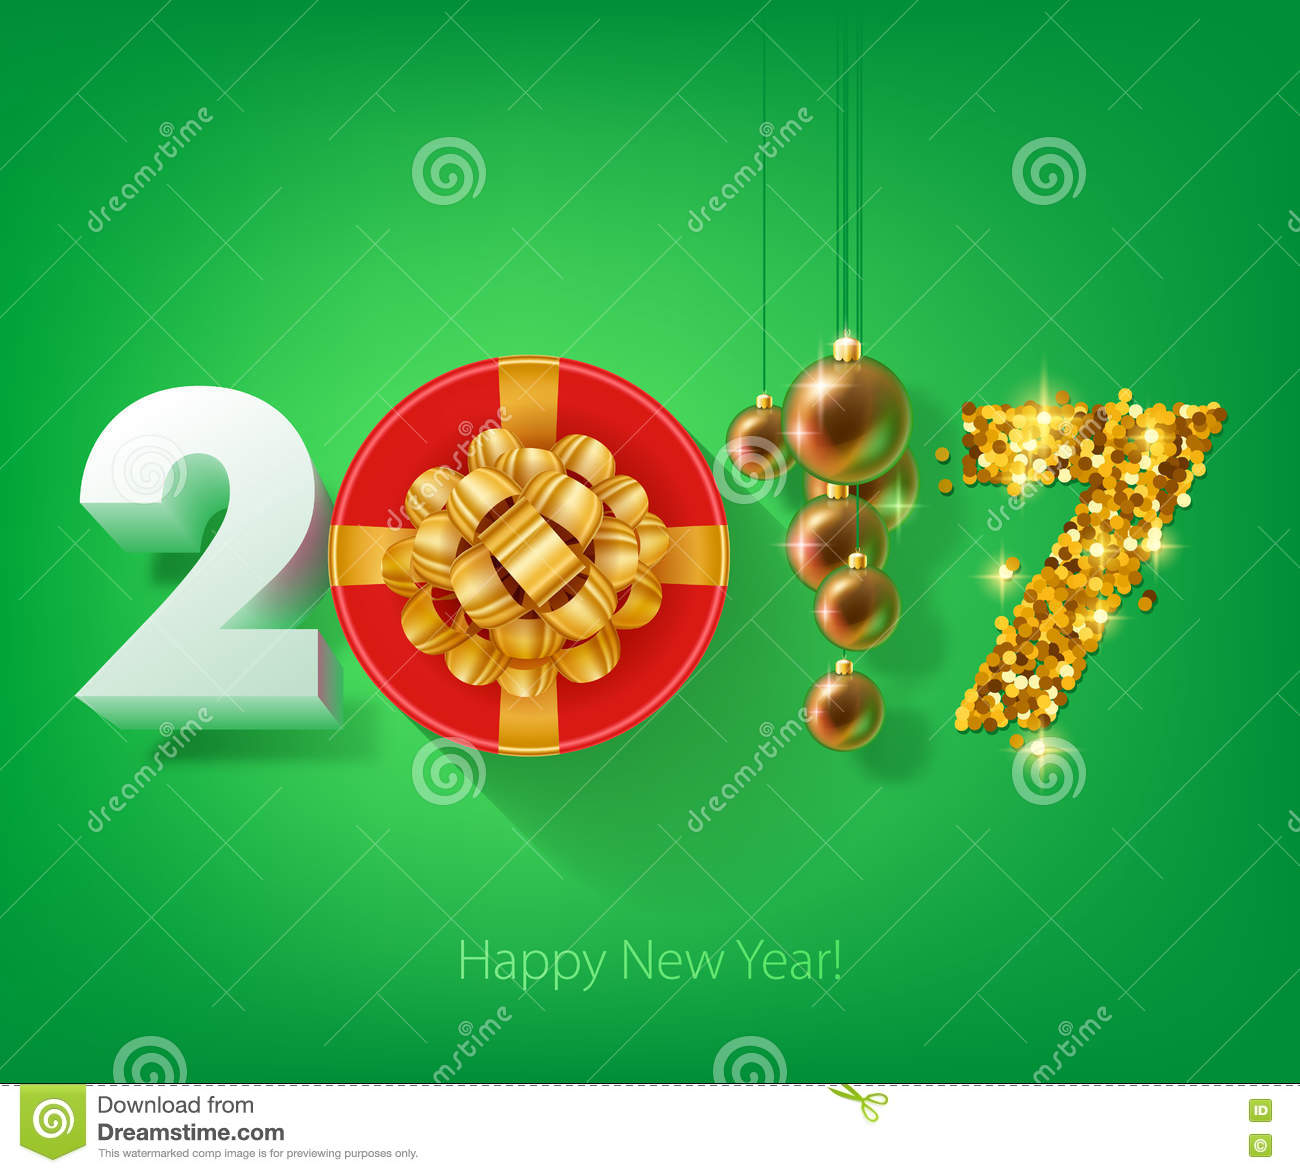 Happy new year 2017 background stock vector illustration of download happy new year 2017 background stock vector illustration of december celebration stopboris Gallery